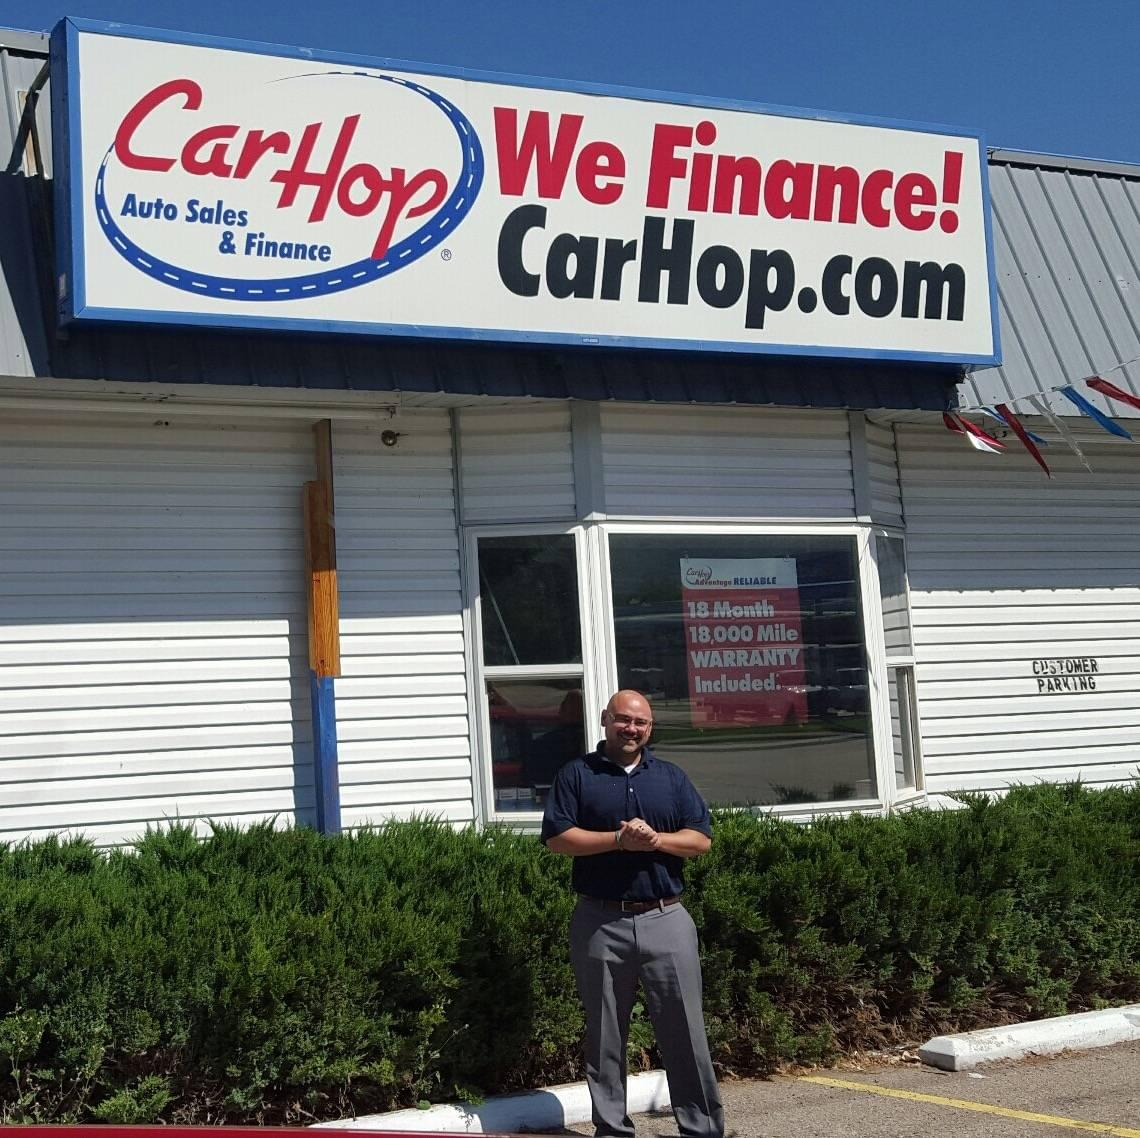 Car Dealerships That Finance Bad Credit: CarHop Auto Sales And Finance